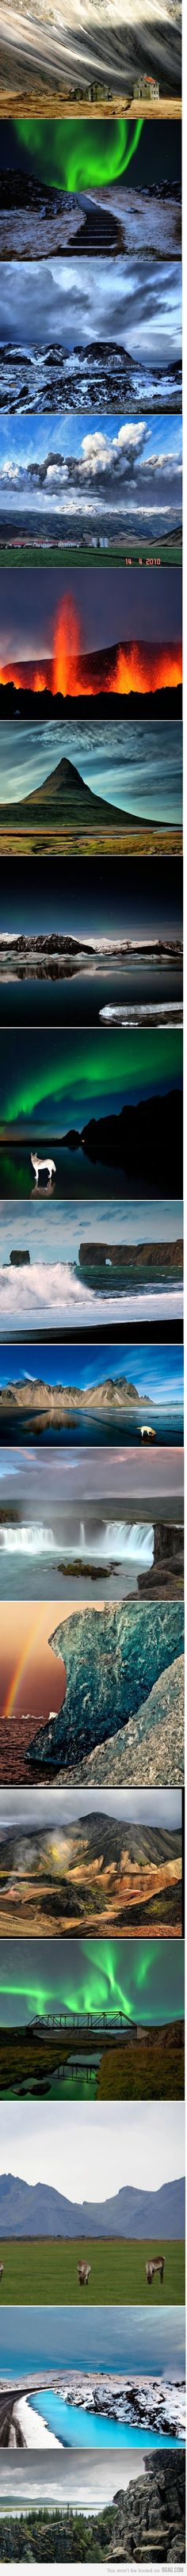 Photographs from Iceland. See more here: http://www.northernlightsiceland.com/